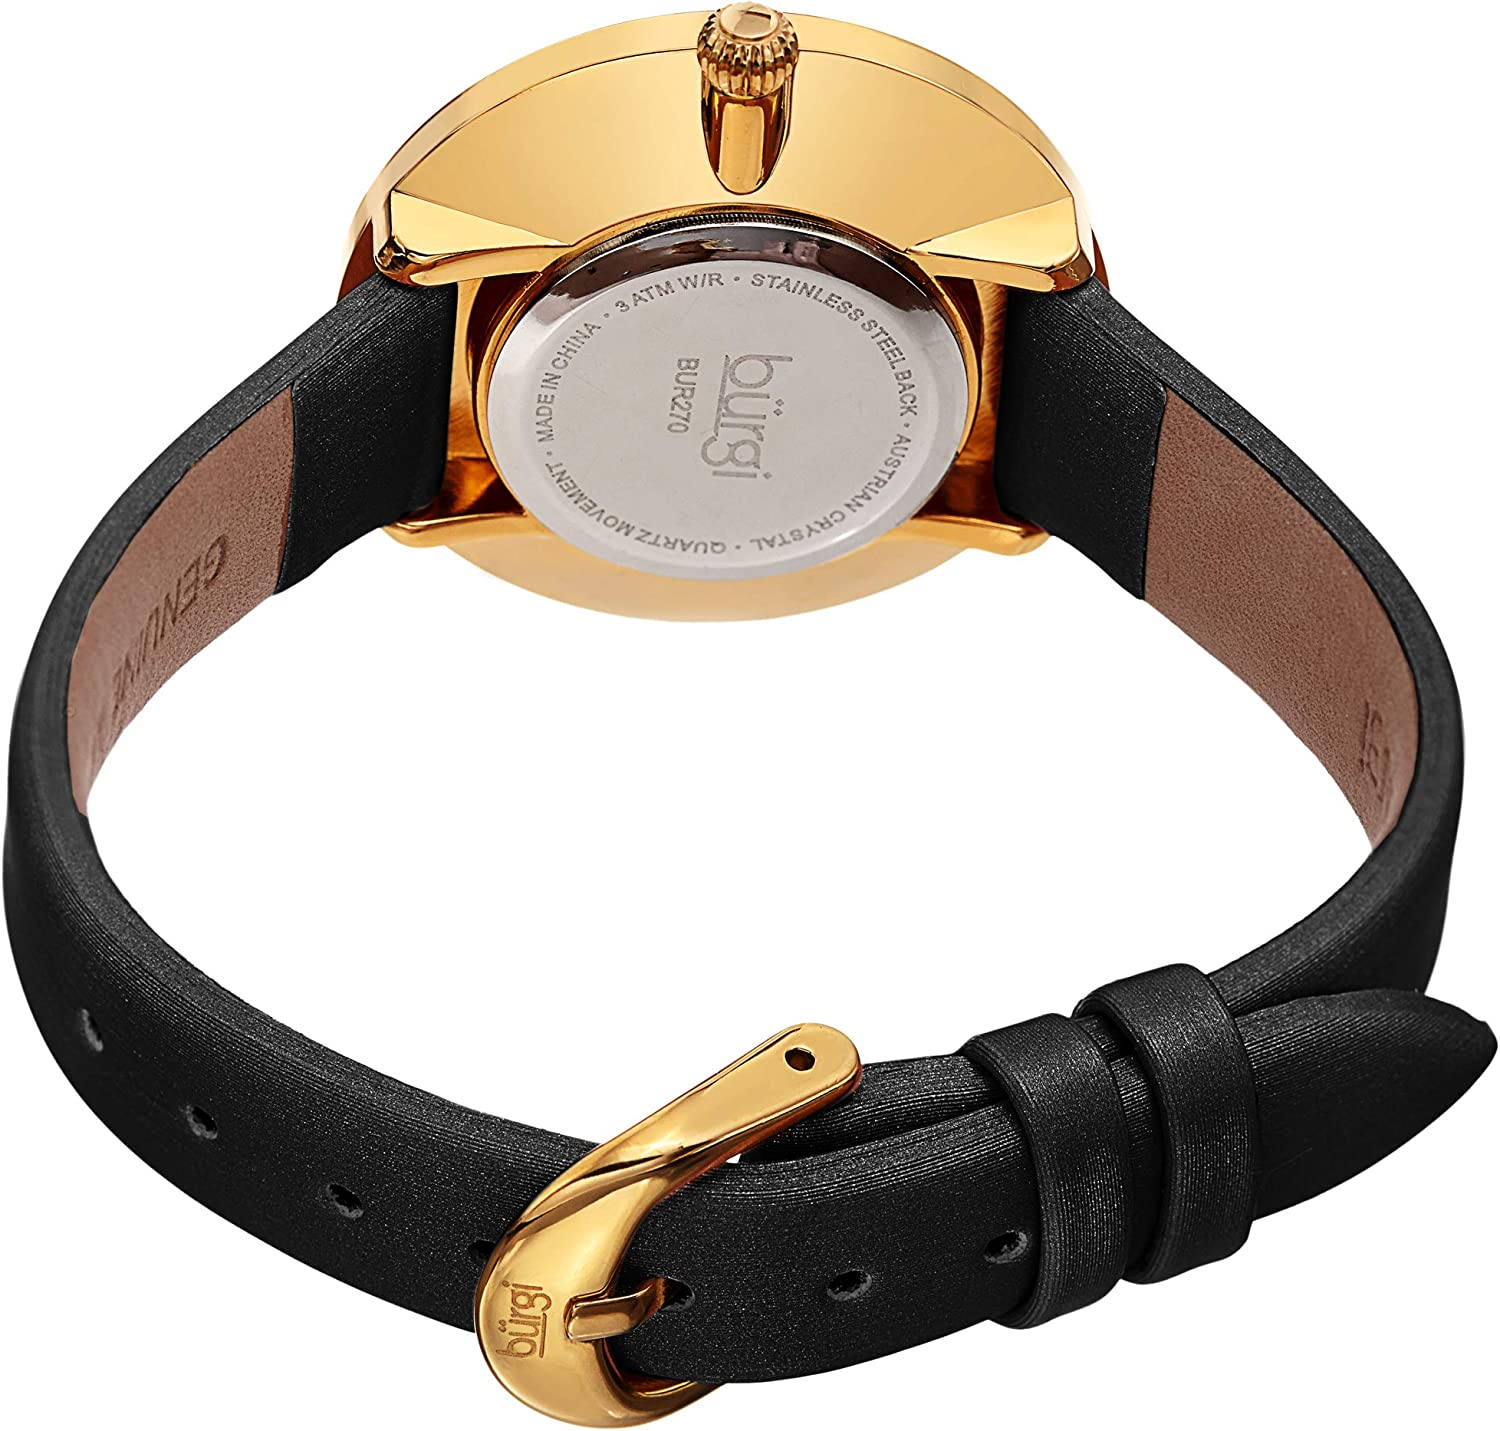 Burgi Swarovski Colored Crystal Watch - 4 Rows of Crystals On Bezel On Clear Sunray Dial On Satin Satin Strap - BUR270 Gold